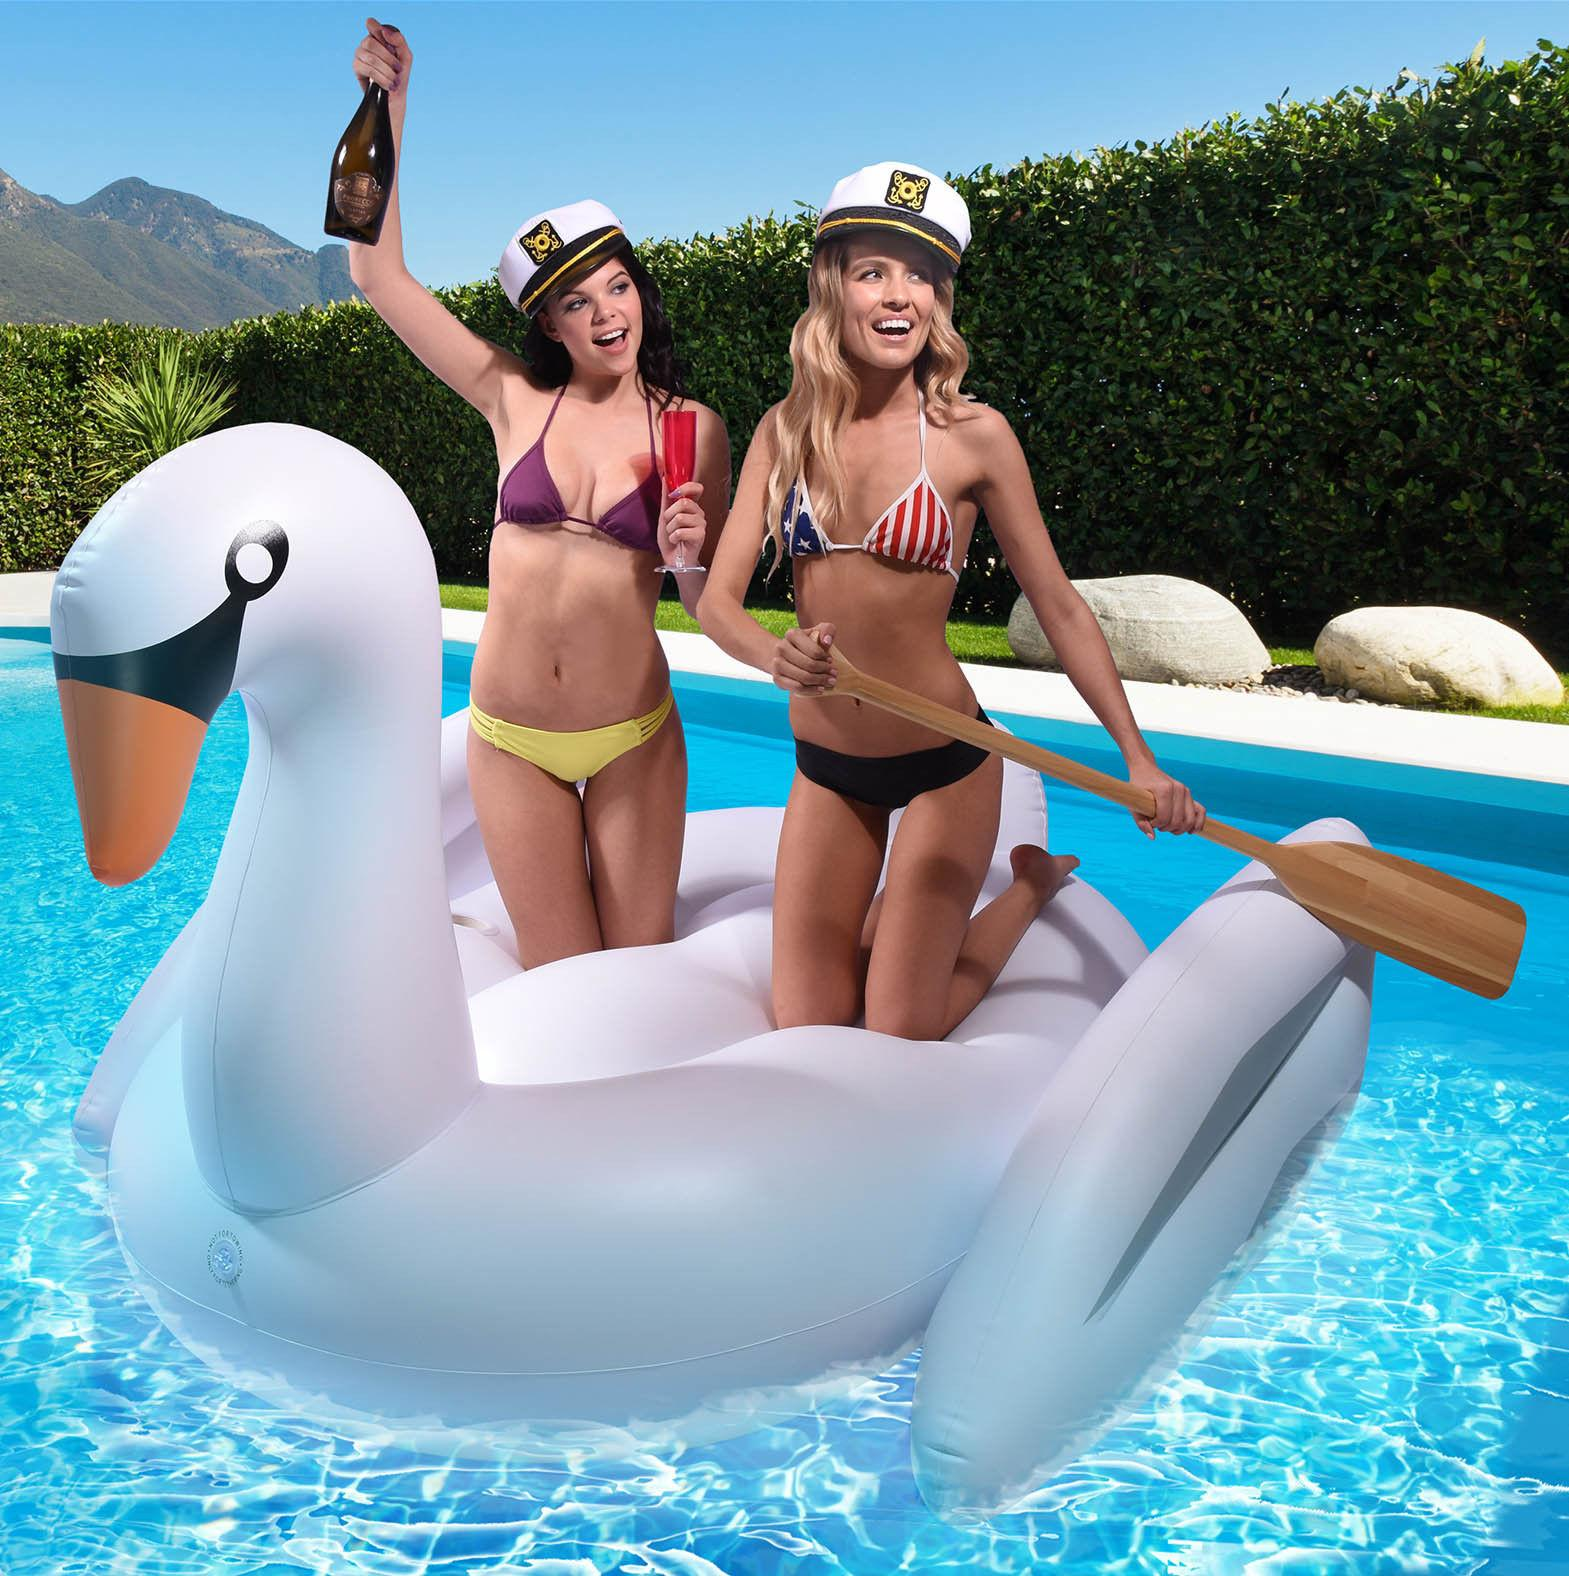 2017 2016 Swan Voyage Giant Inflatable Swan Pool Float Heavy Duty Holds 2+  Adults By Fedex Or Dhl From Gldzkj, $71.34 | Dhgate.Com